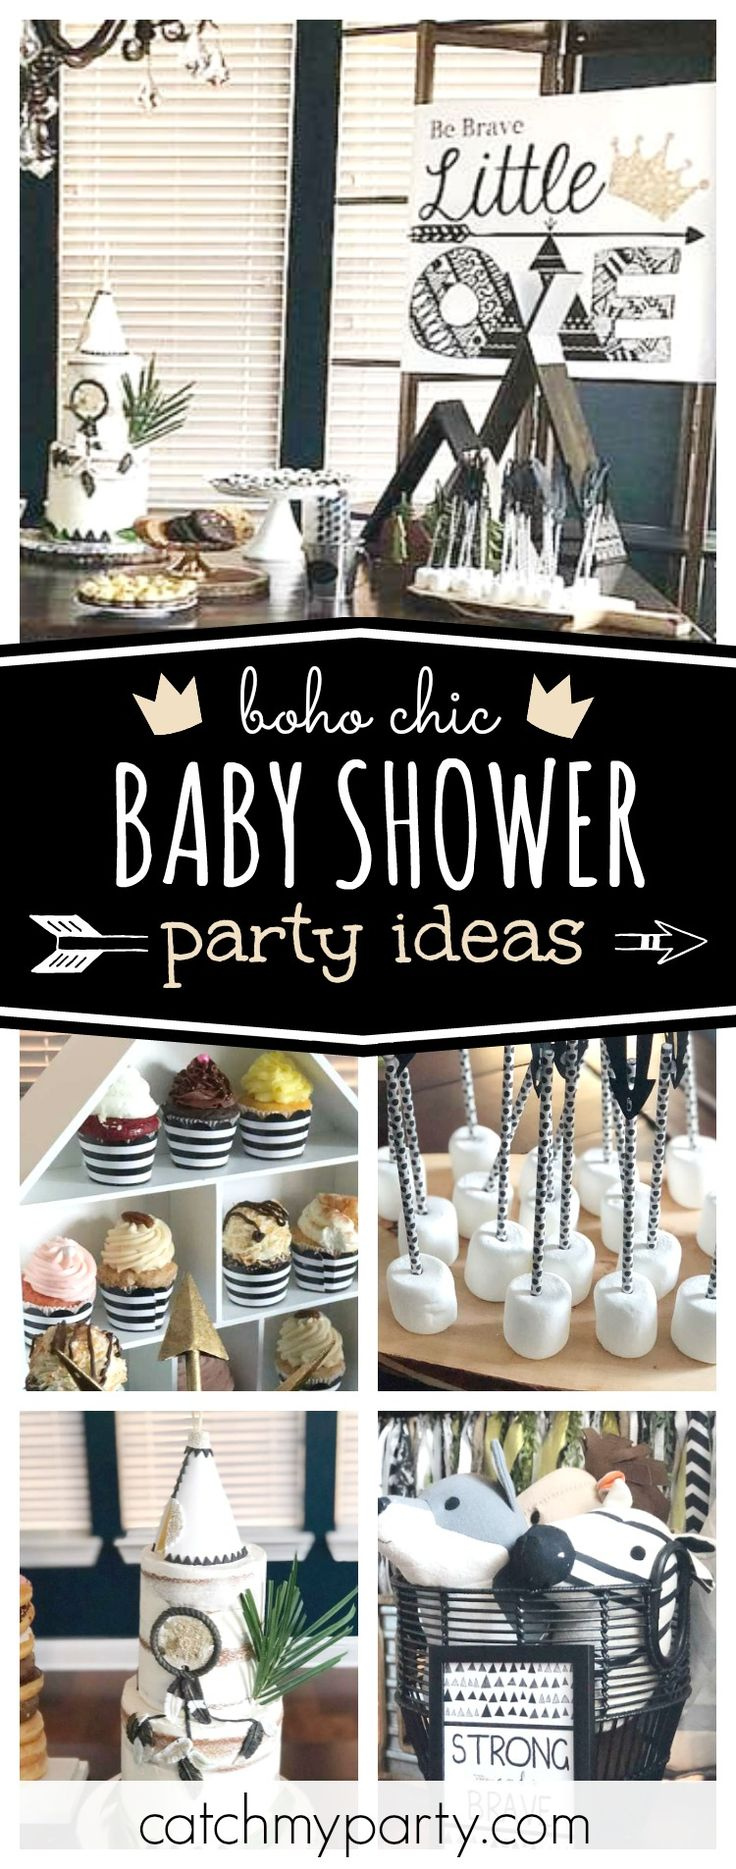 Check out this fantastic Boho Chic Little Man Baby Shower! The cake is incredible!! See more party ideas and share yours at CatchMyParty.com #partyideas #littleman #babyshower #bohochic #bohemian